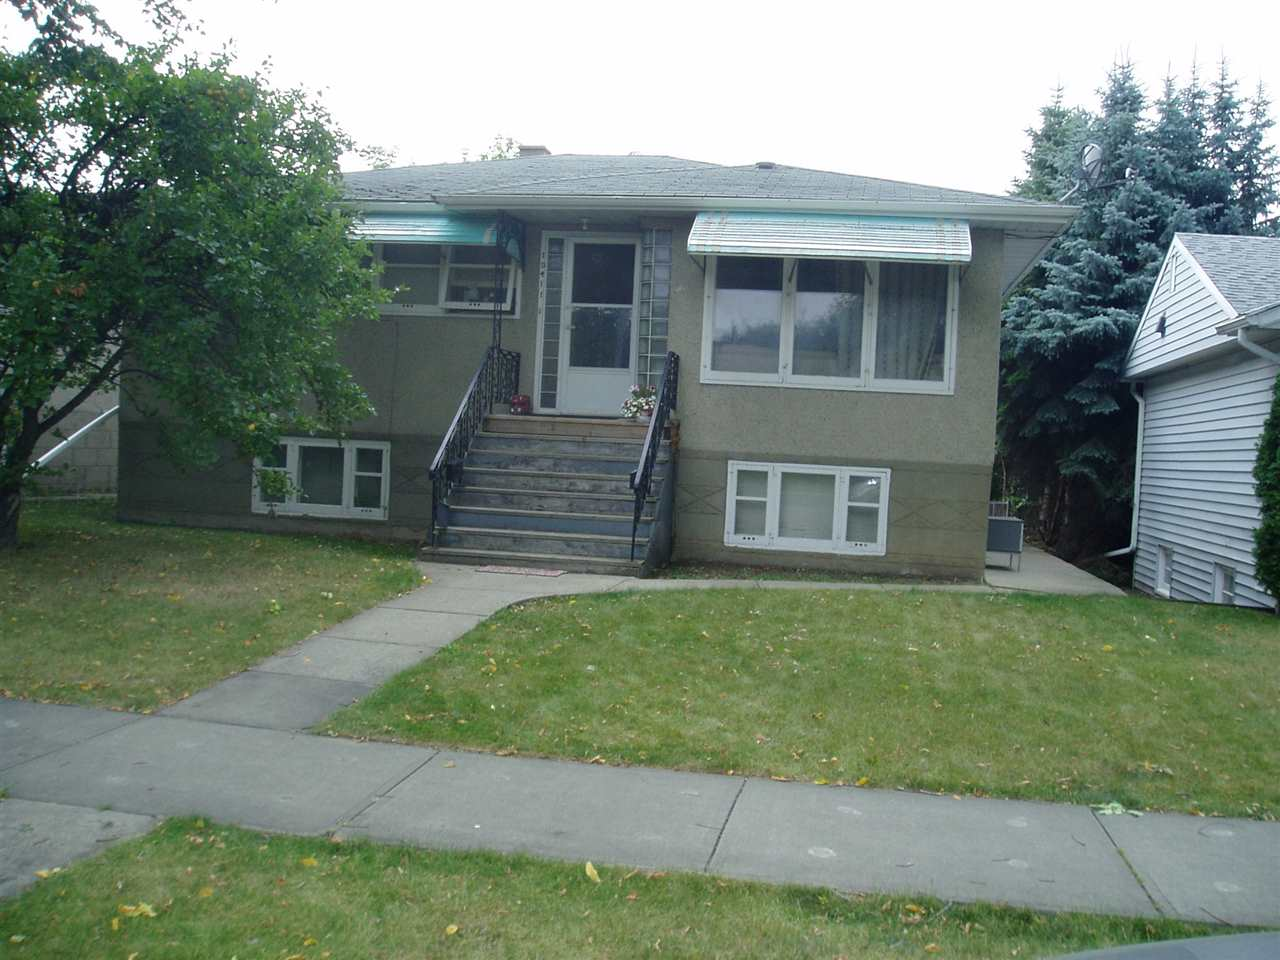 Raised bungalow with separate entrance from outside as well as inside to the lower level which has 2 bedrooms, bathroom as well as living room and kitchen. Three bedrooms up. The property is in a great very popular location close to parks and trails. Long term tenants. The property is complimented with a 22ft. x 24ft. double garage as well as concrete sidewalks.  The property requires upgrading.